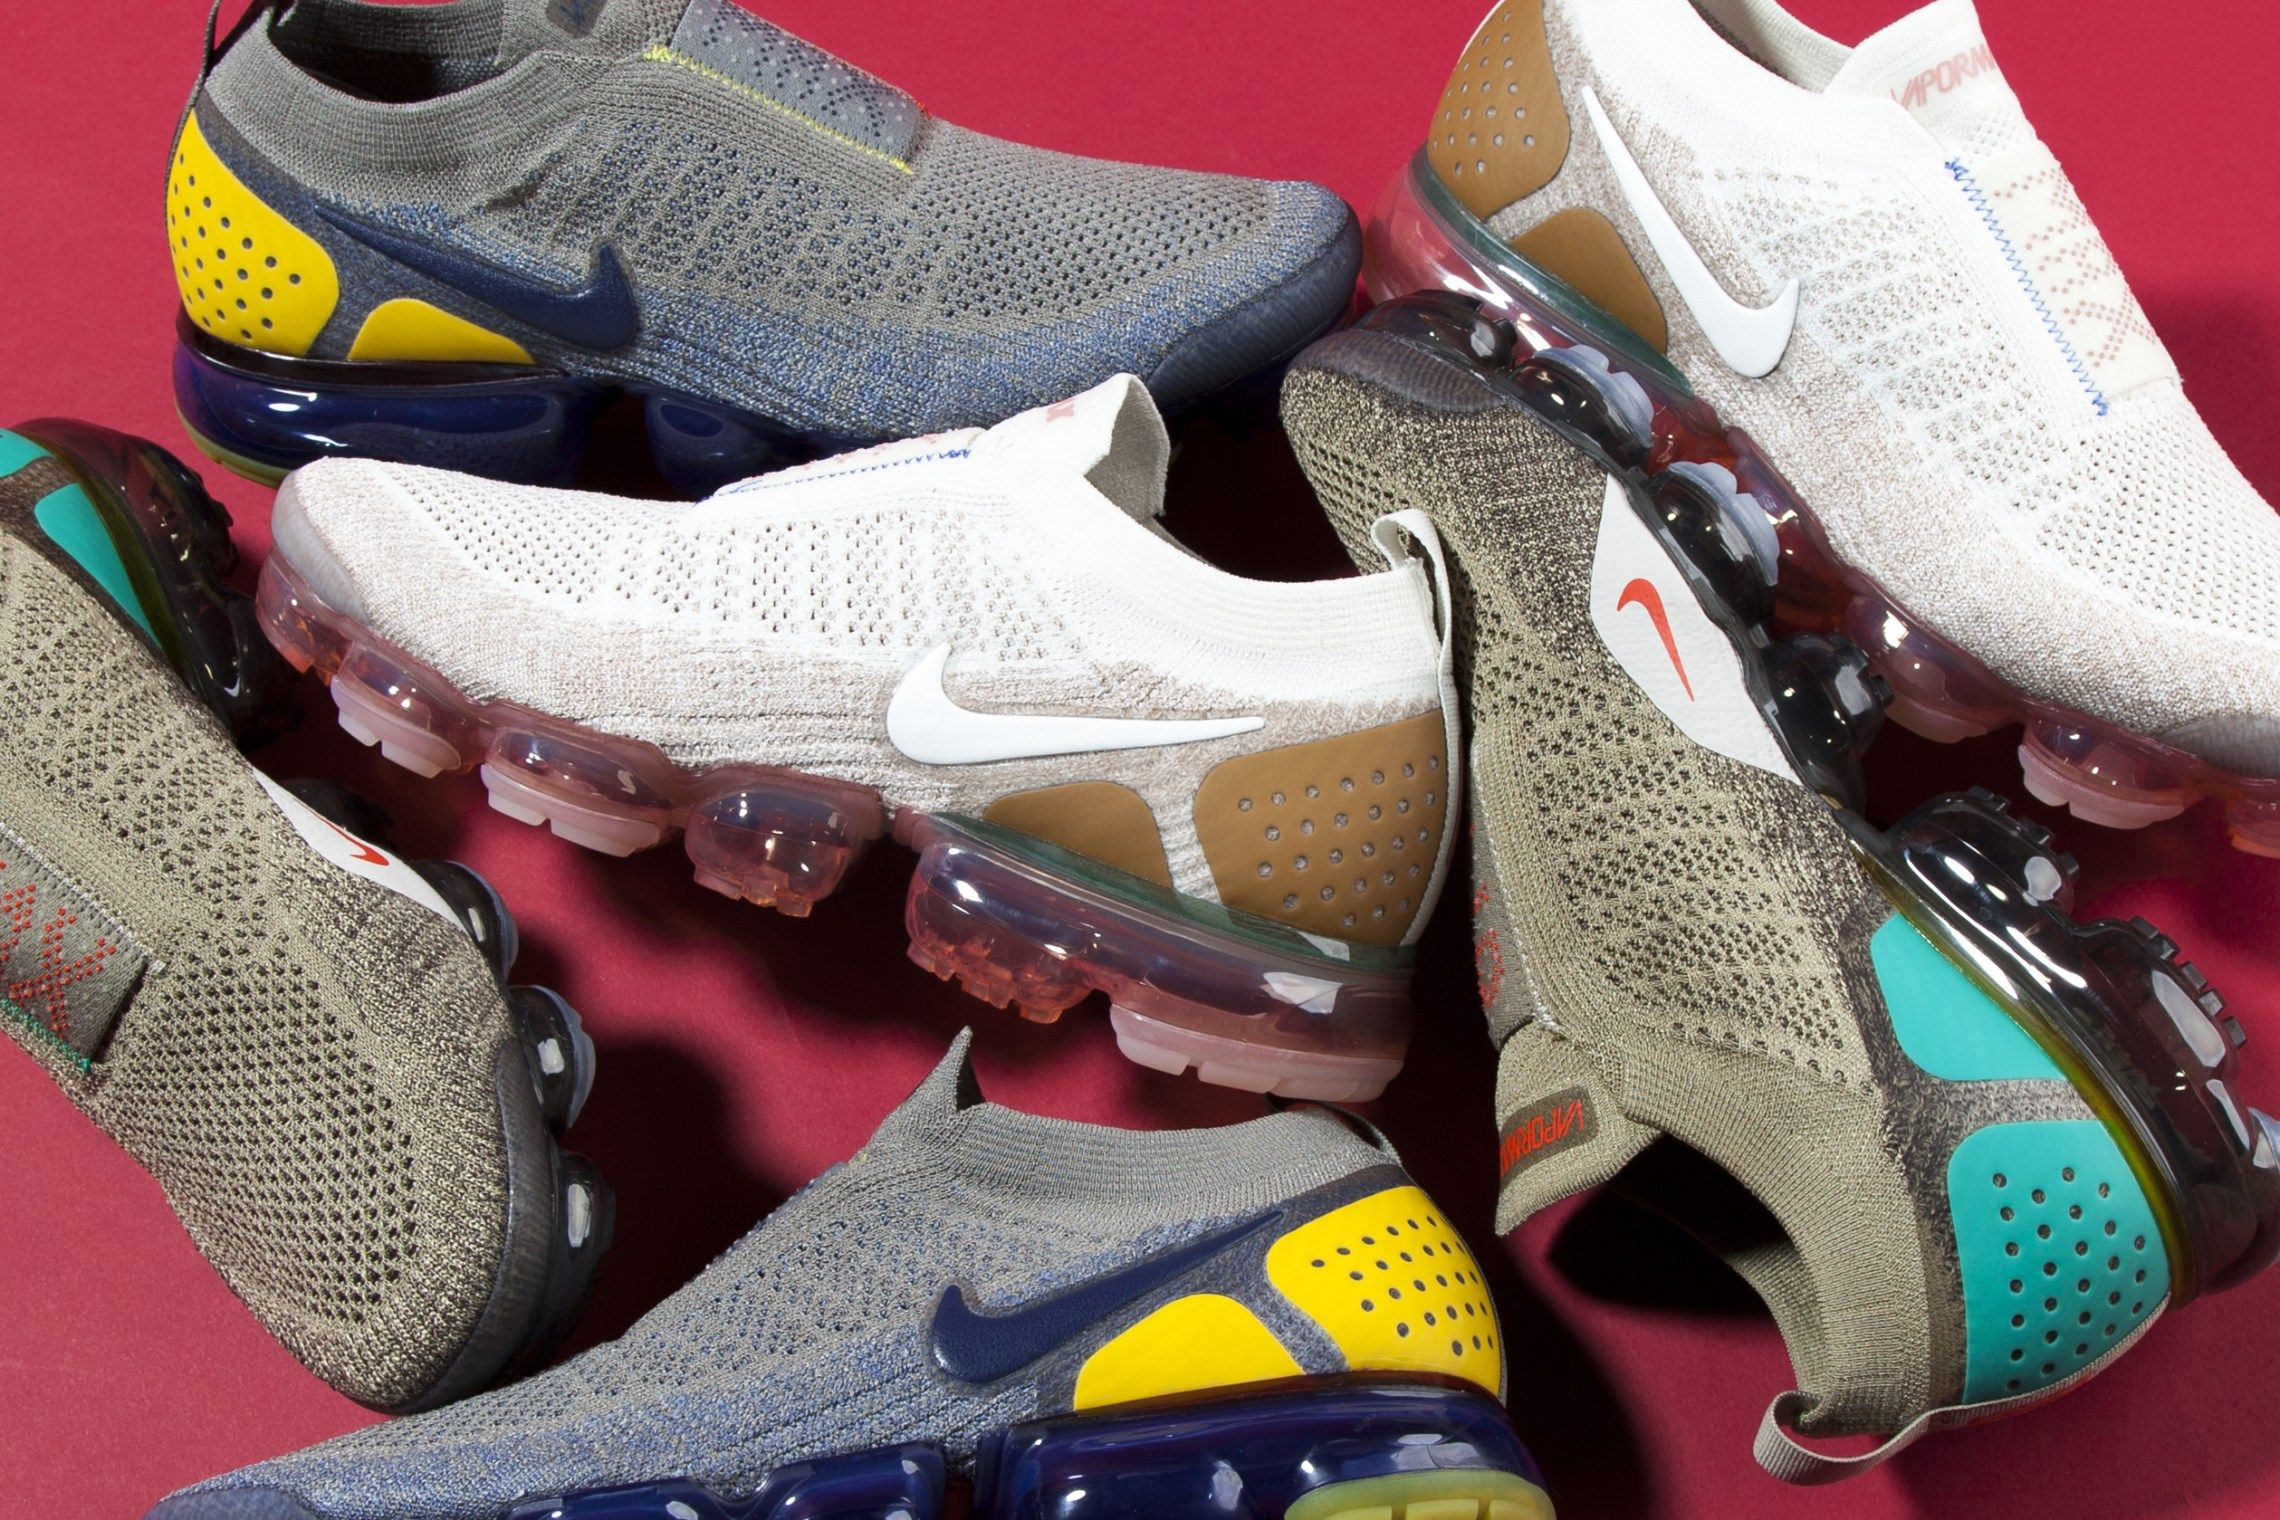 outlet store 86651 998e4 Save by Hermie. Nike Air VaporMax Moc 2 Releases In New Colorways   Nice  Kicks